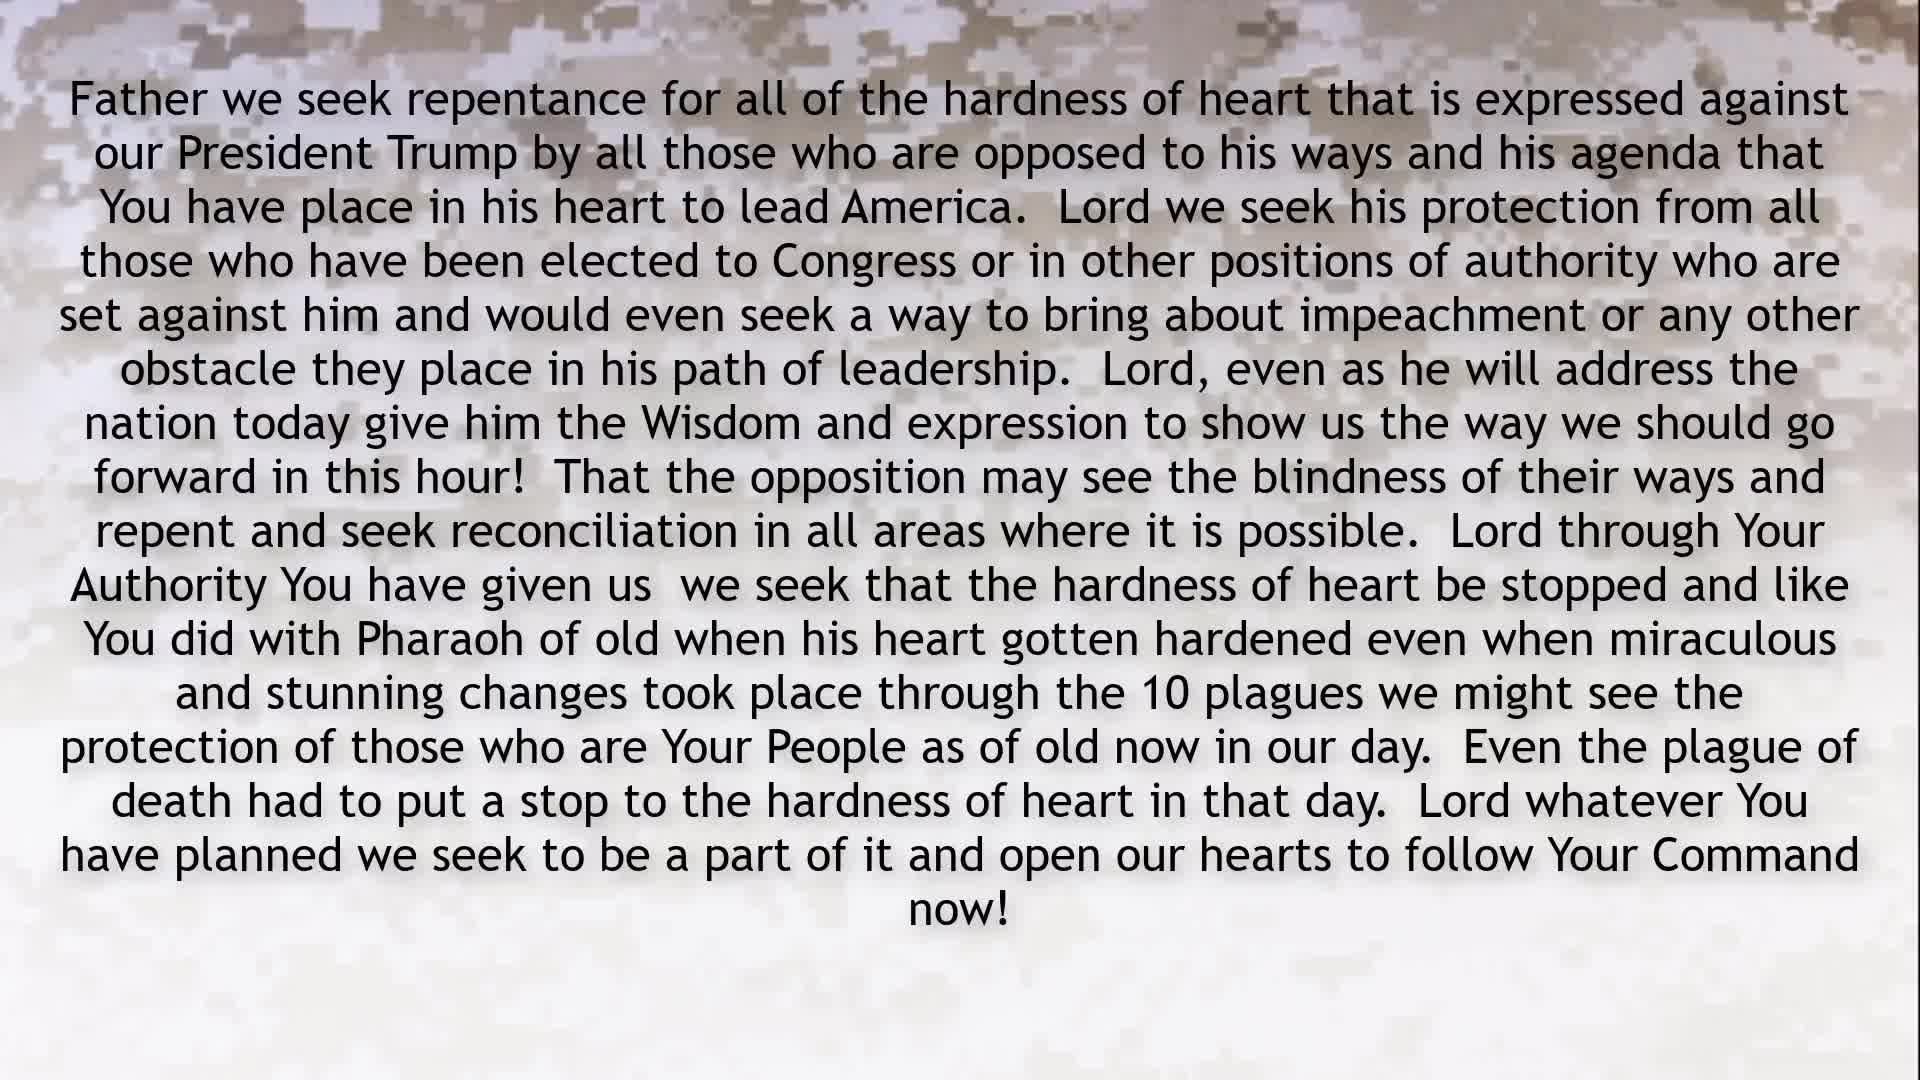 PRAYER FOCUS REPENTANCE FOR ANY HARDNESS OF HEART IN OUR NATION AGAINST THE PLAN YOU HAVE FOR US.